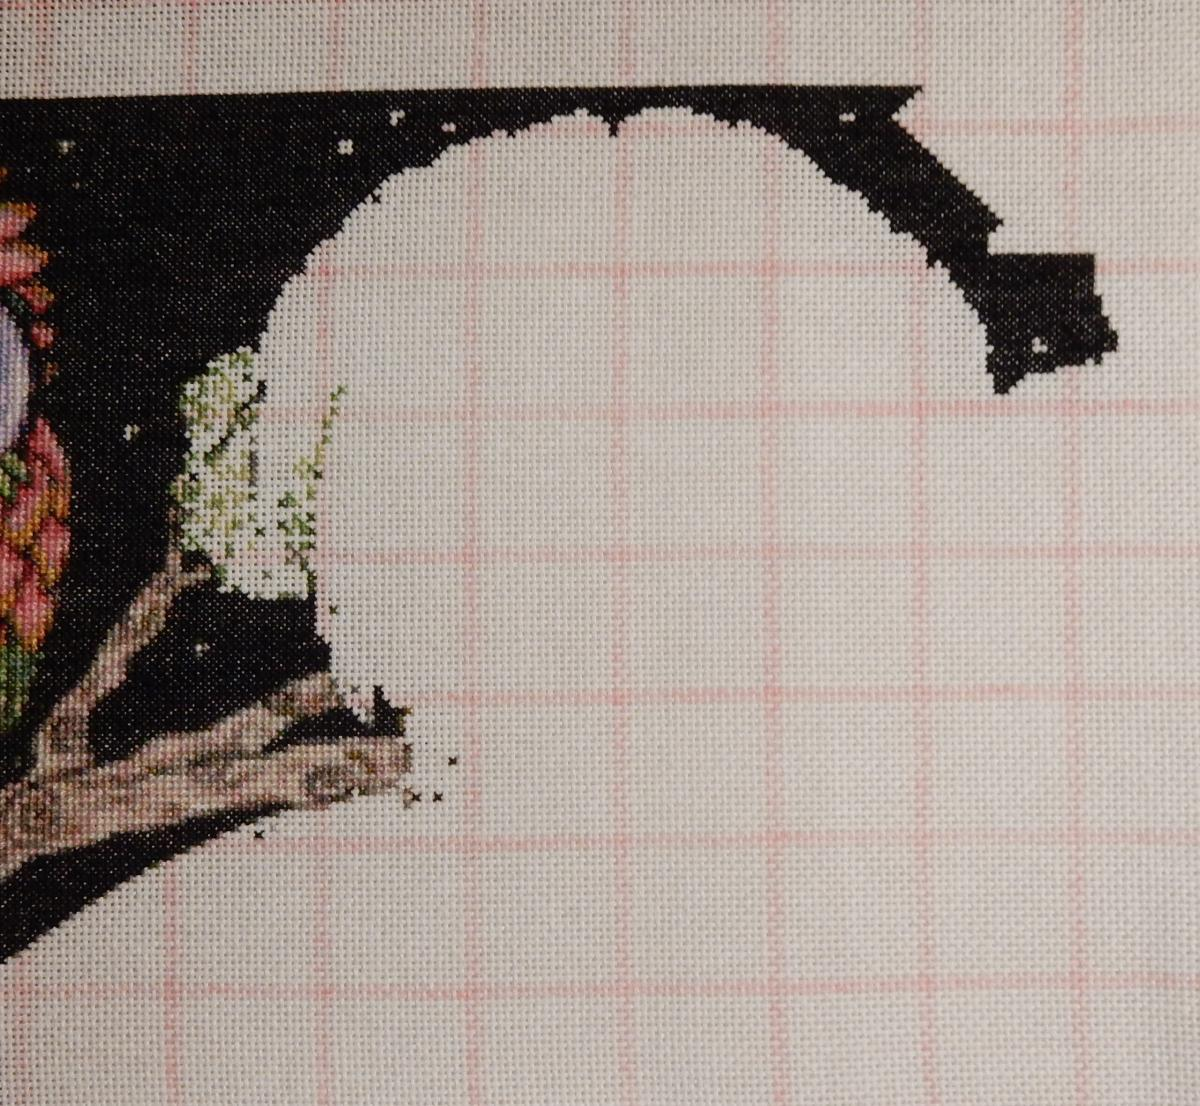 In-progress shot of a counted cross-stitch-project. The black background at the top is outlining the shape of the head of an owl. To the left, there are some finished branches and the start of an area of green foliage.